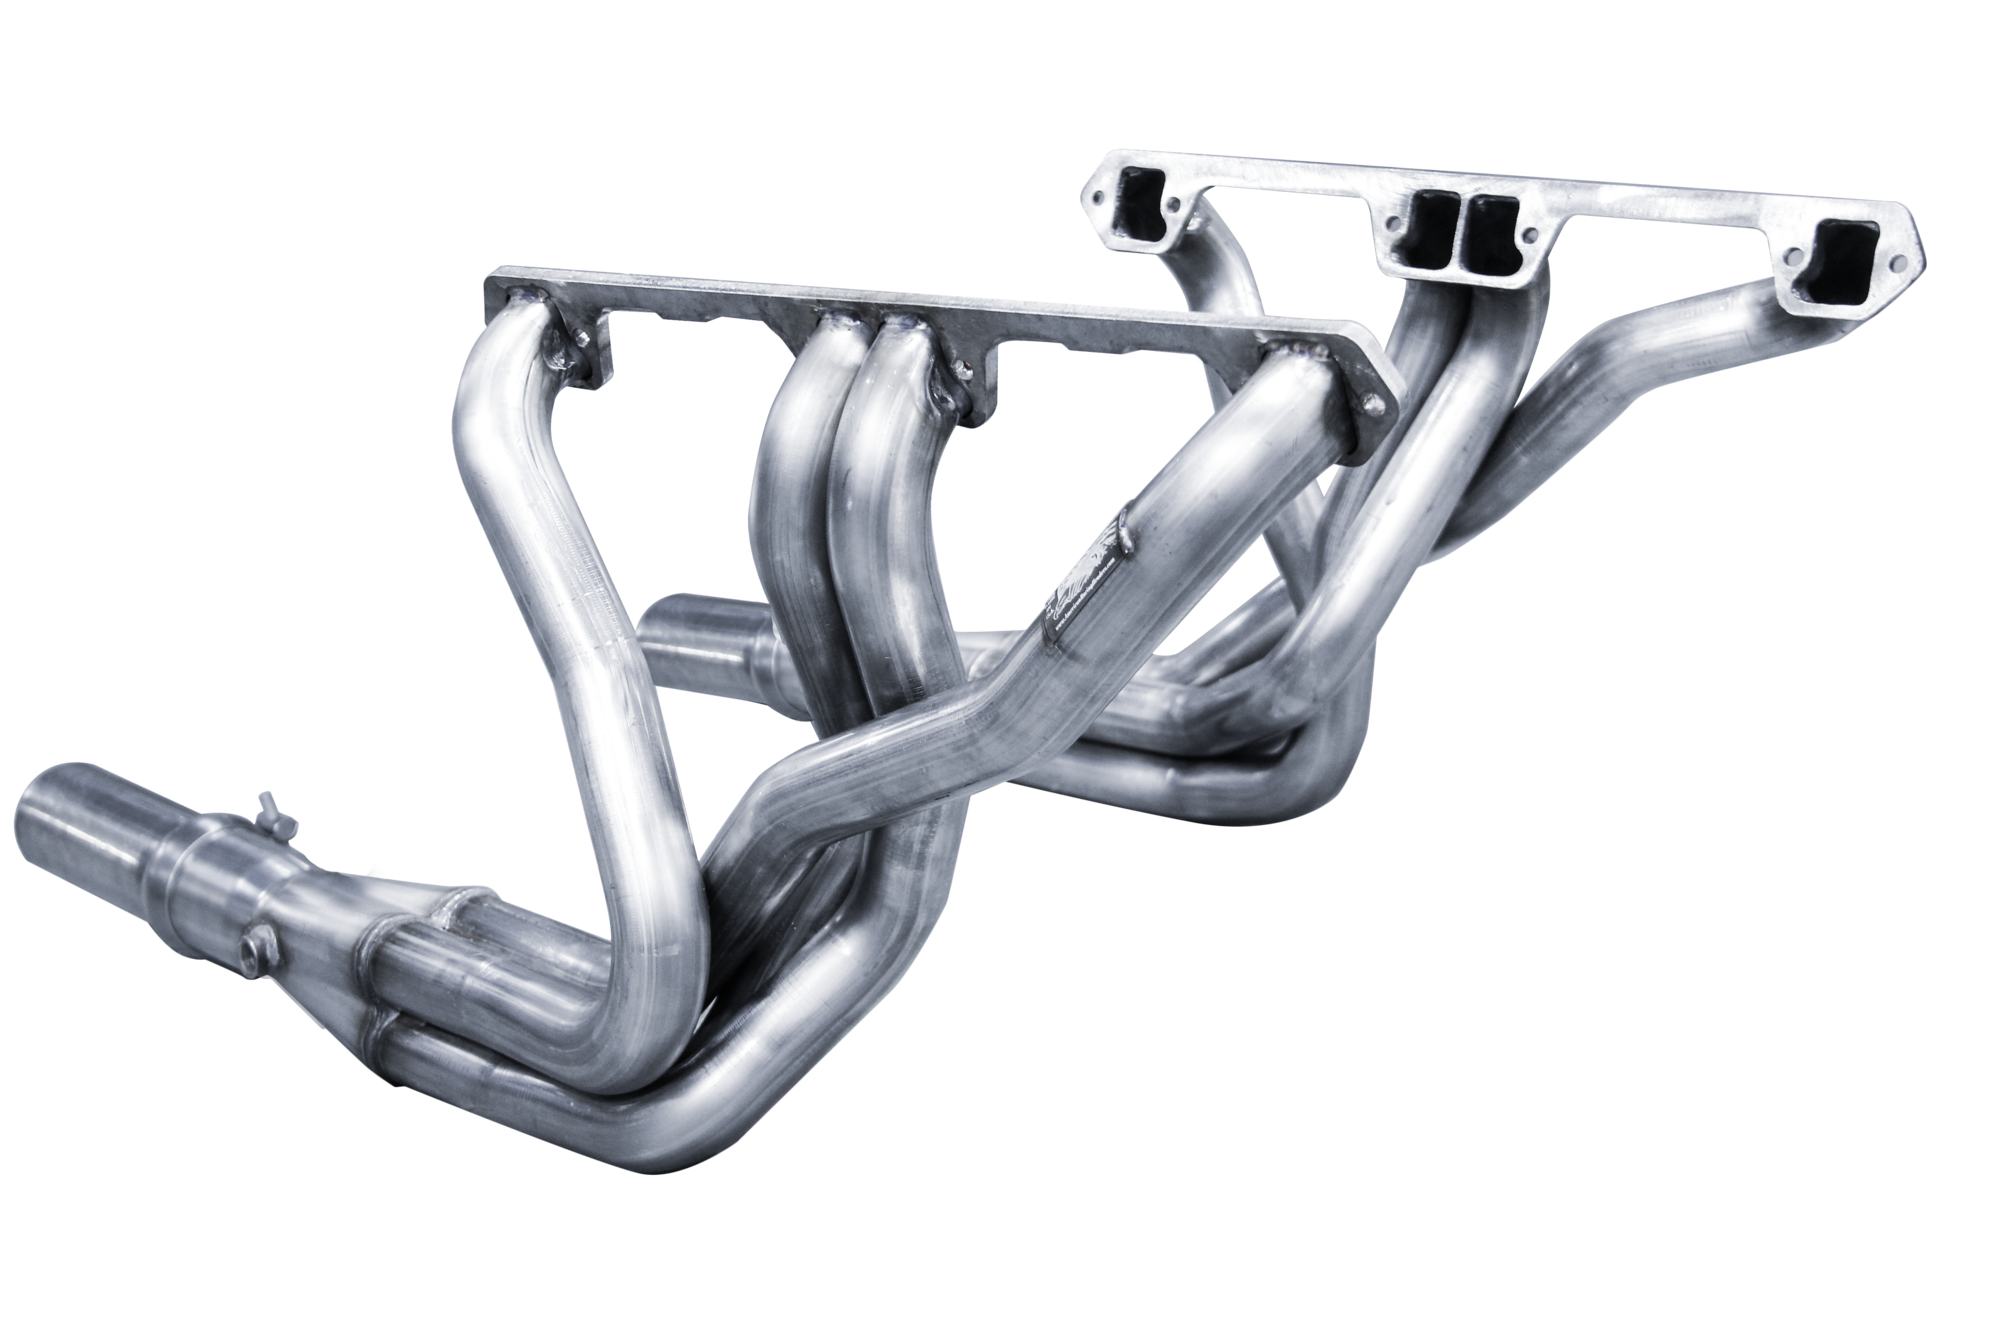 New Exhaust Manifold for American Motors Concord 1980 to 1988